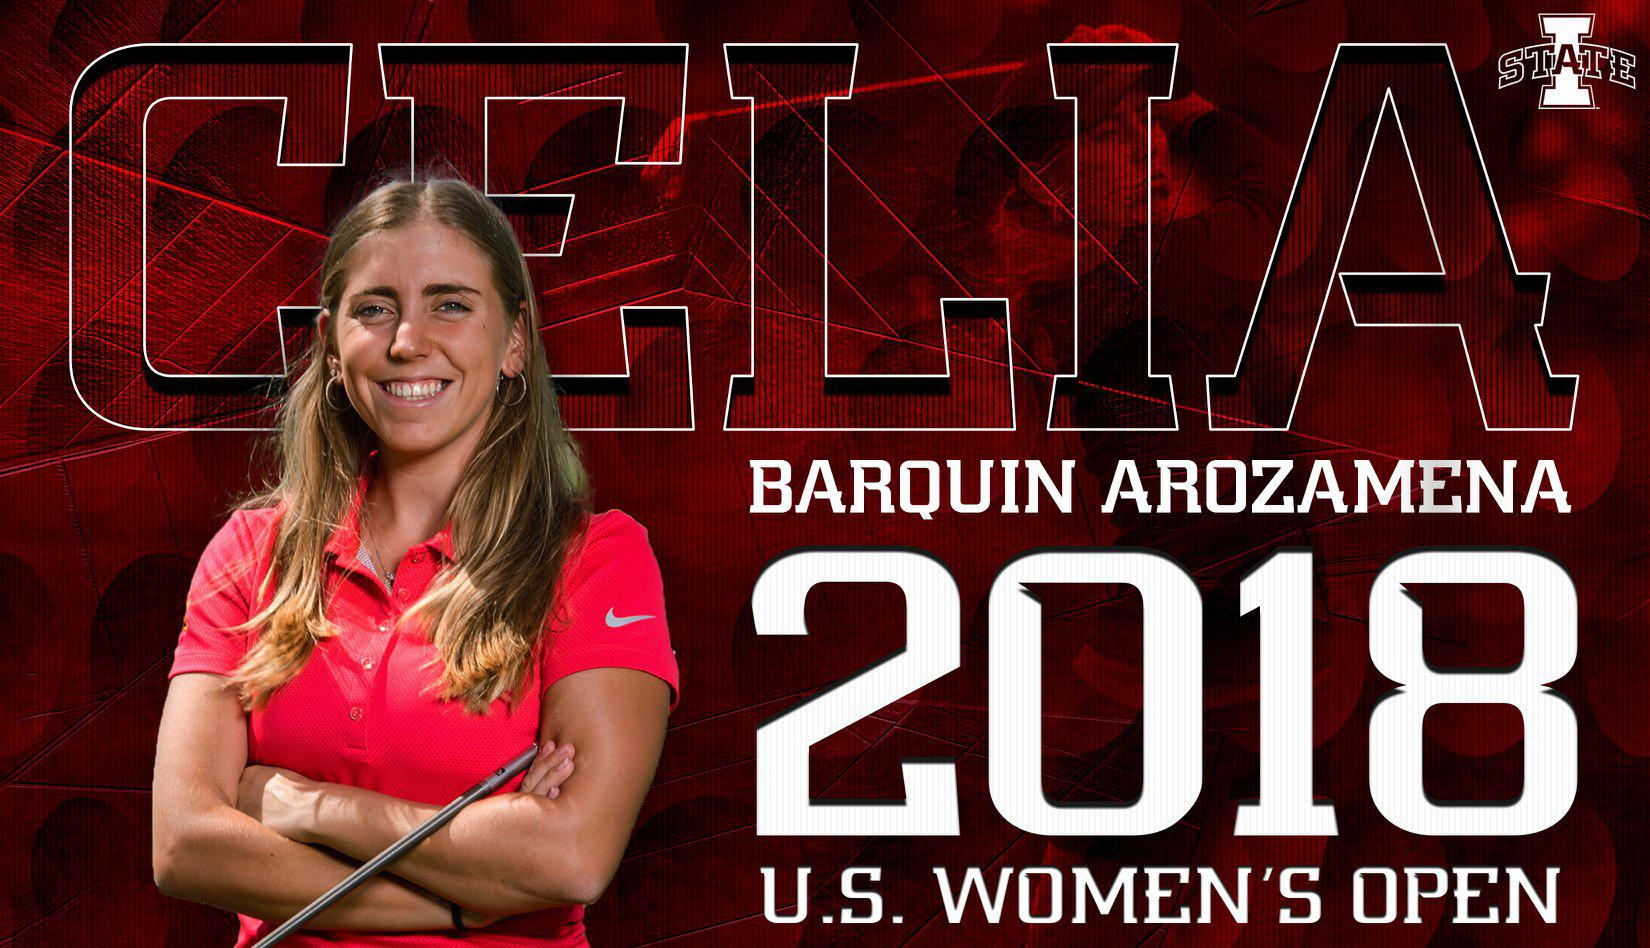 Celia Barquin Arozamena qualified for the US Women's Open this year